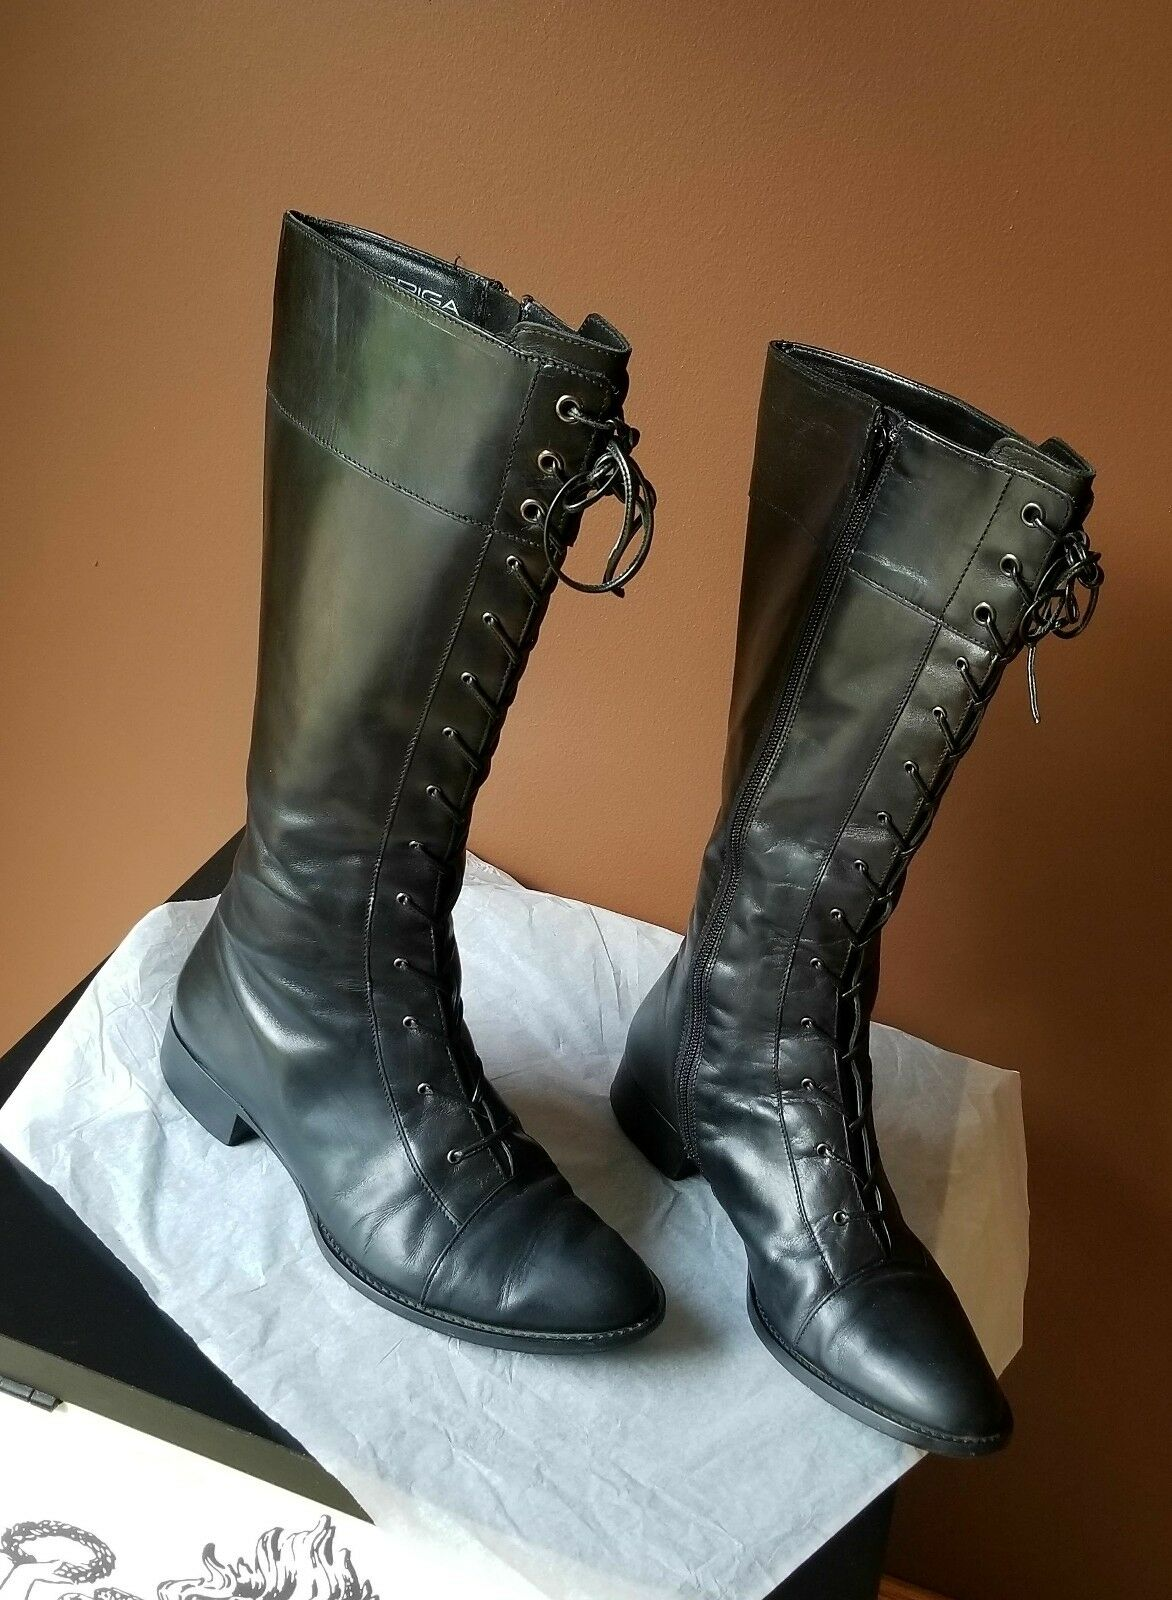 Via Spiga  laced laced laced up black knee high boots with zip on the sides, size 7.5M 6711e9